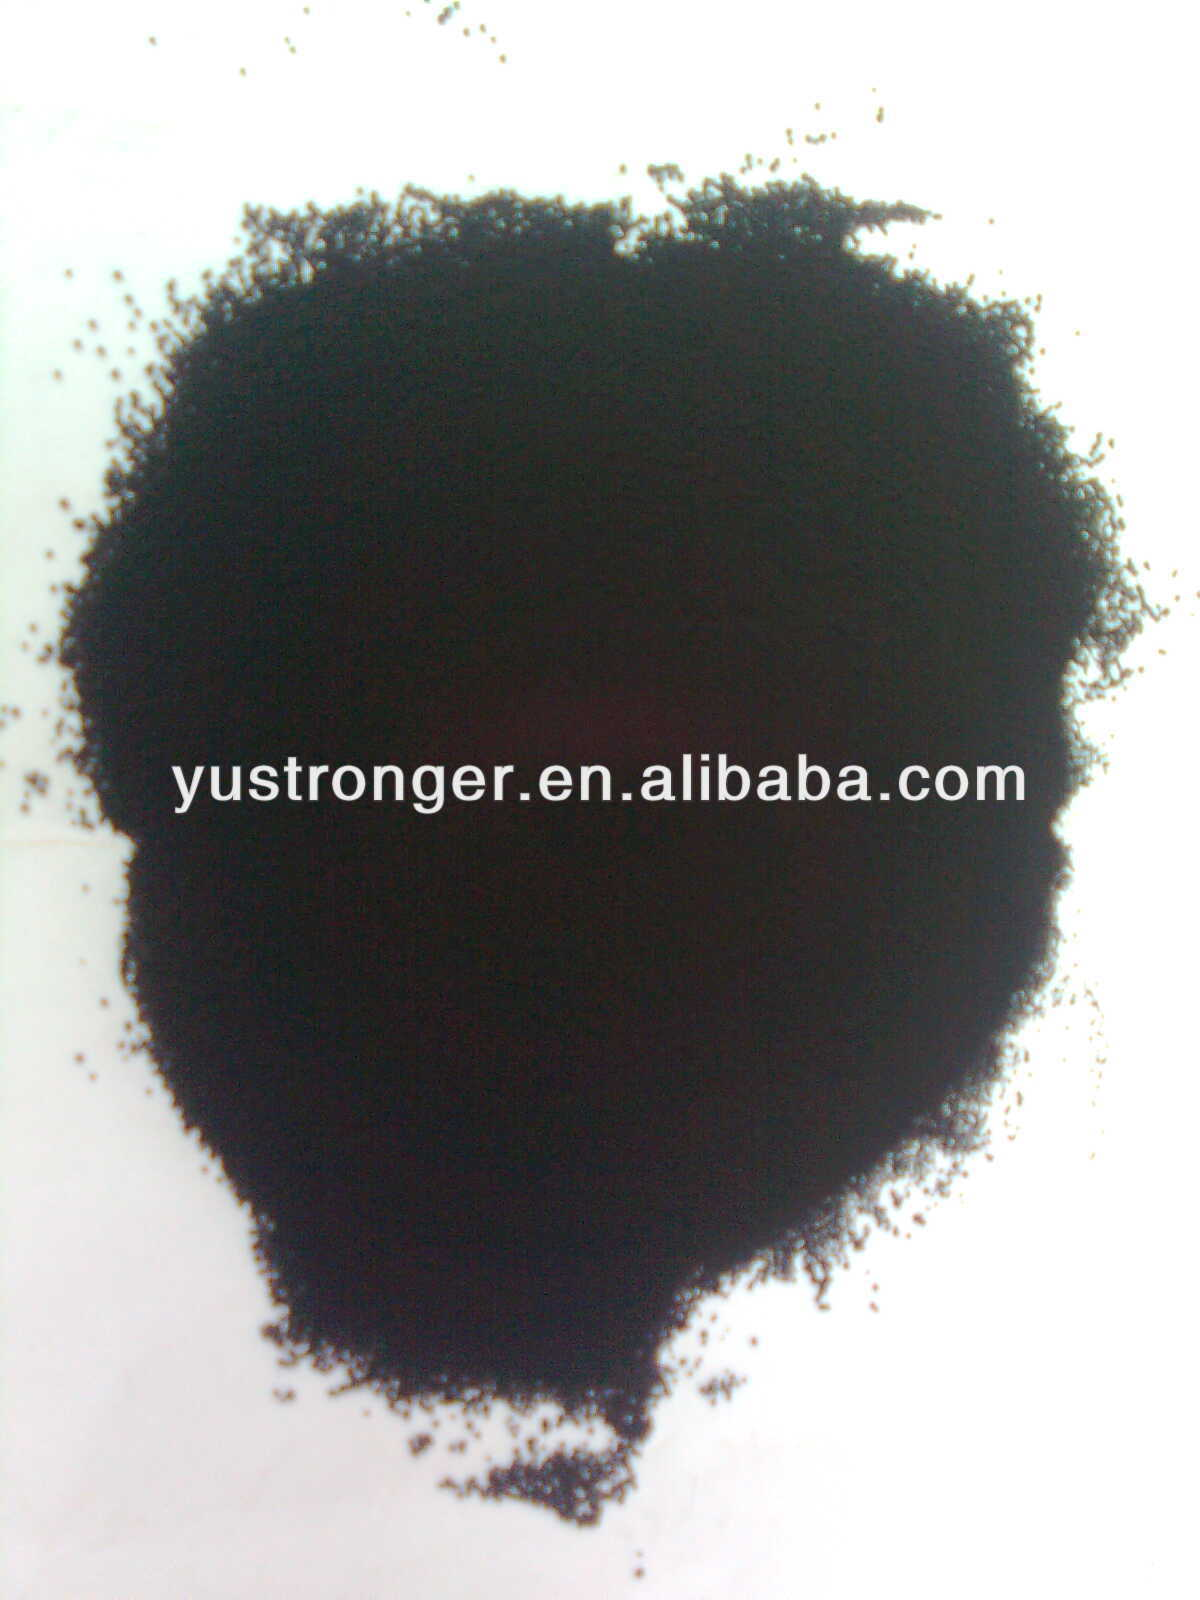 Factory directly looking for partner of carbon black for rubber application